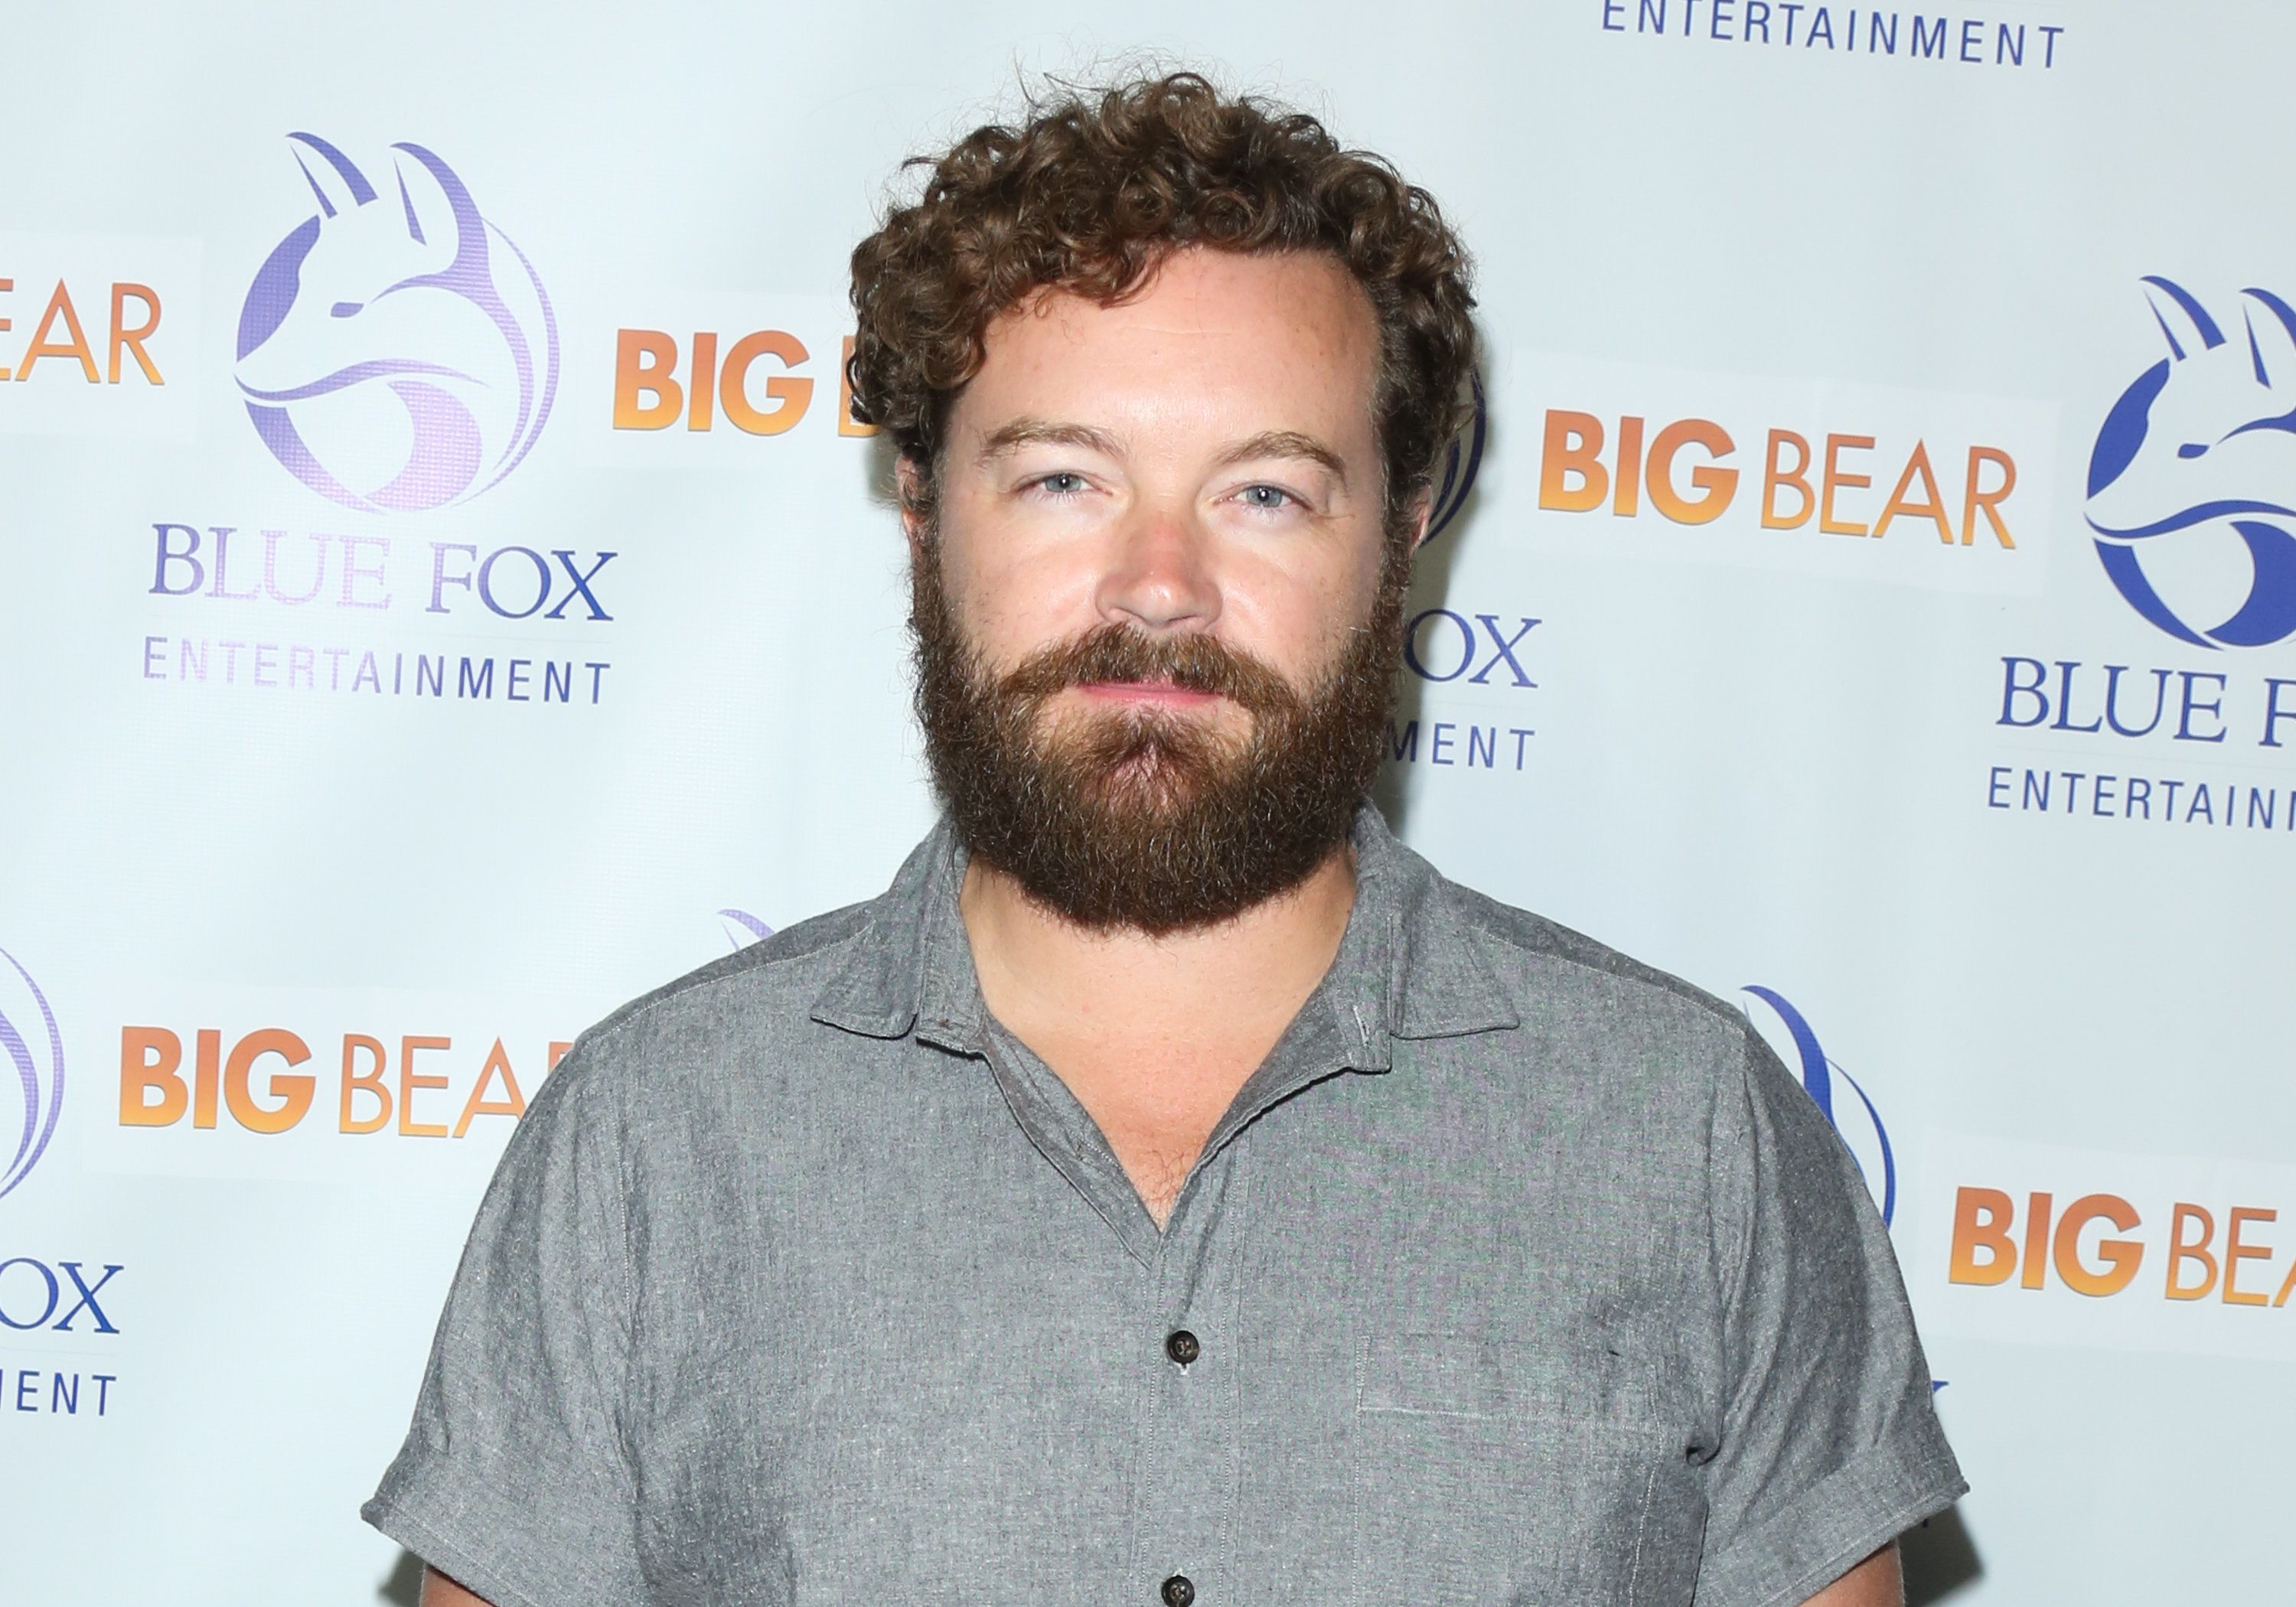 A Fifth Woman Comes Forward With Rape Accusations Against Danny Masterson